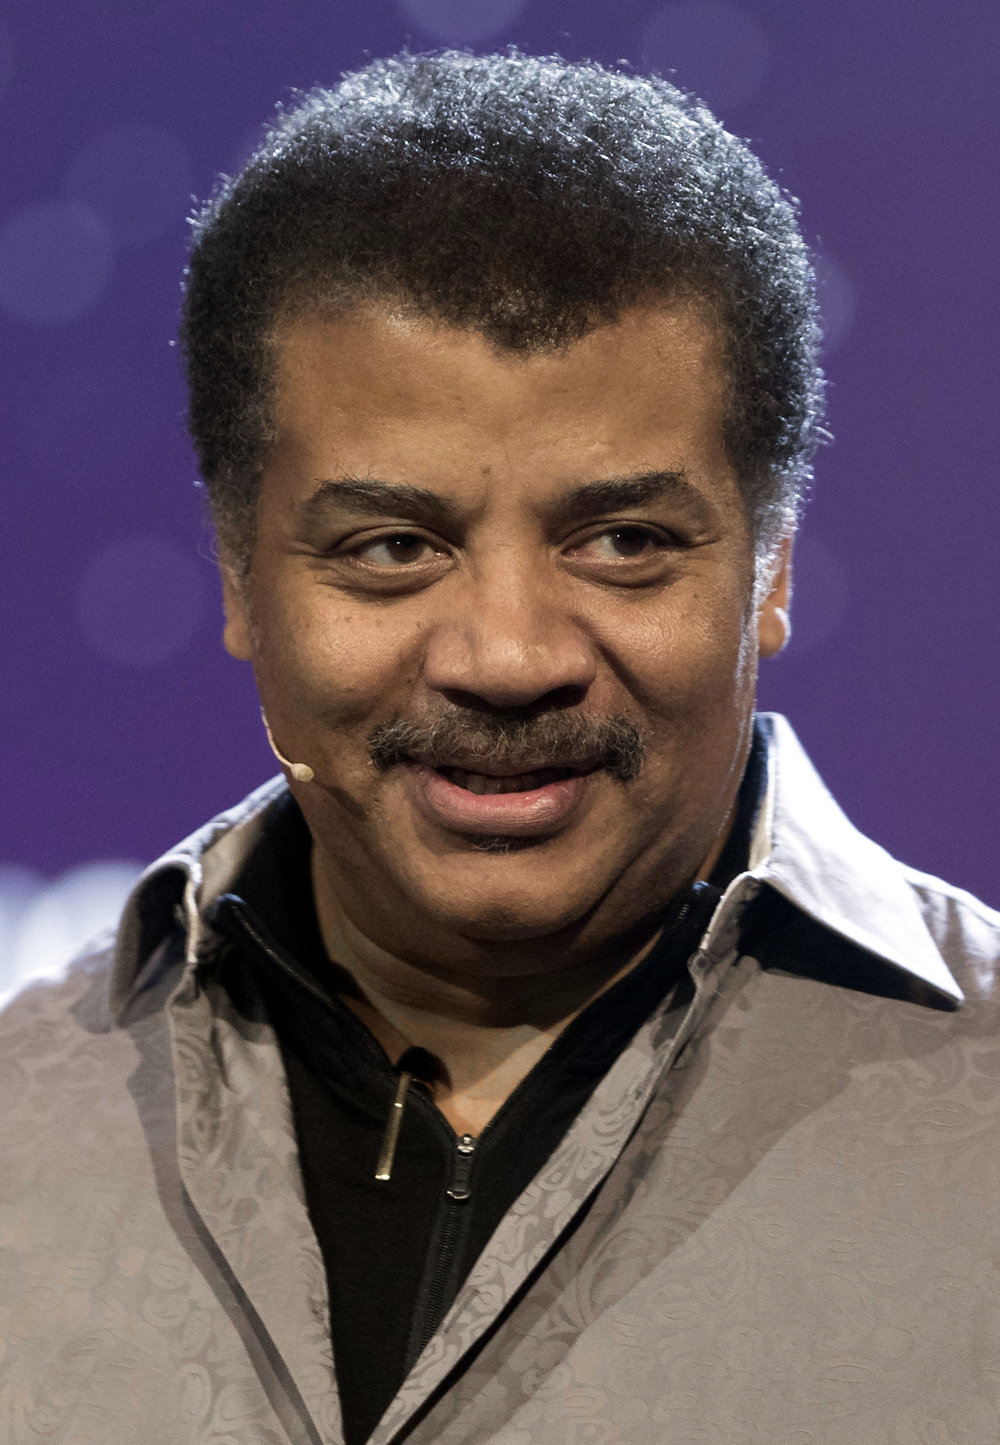 Neil_deGrasse_Tyson_in_June_2017_(cropped).jpg